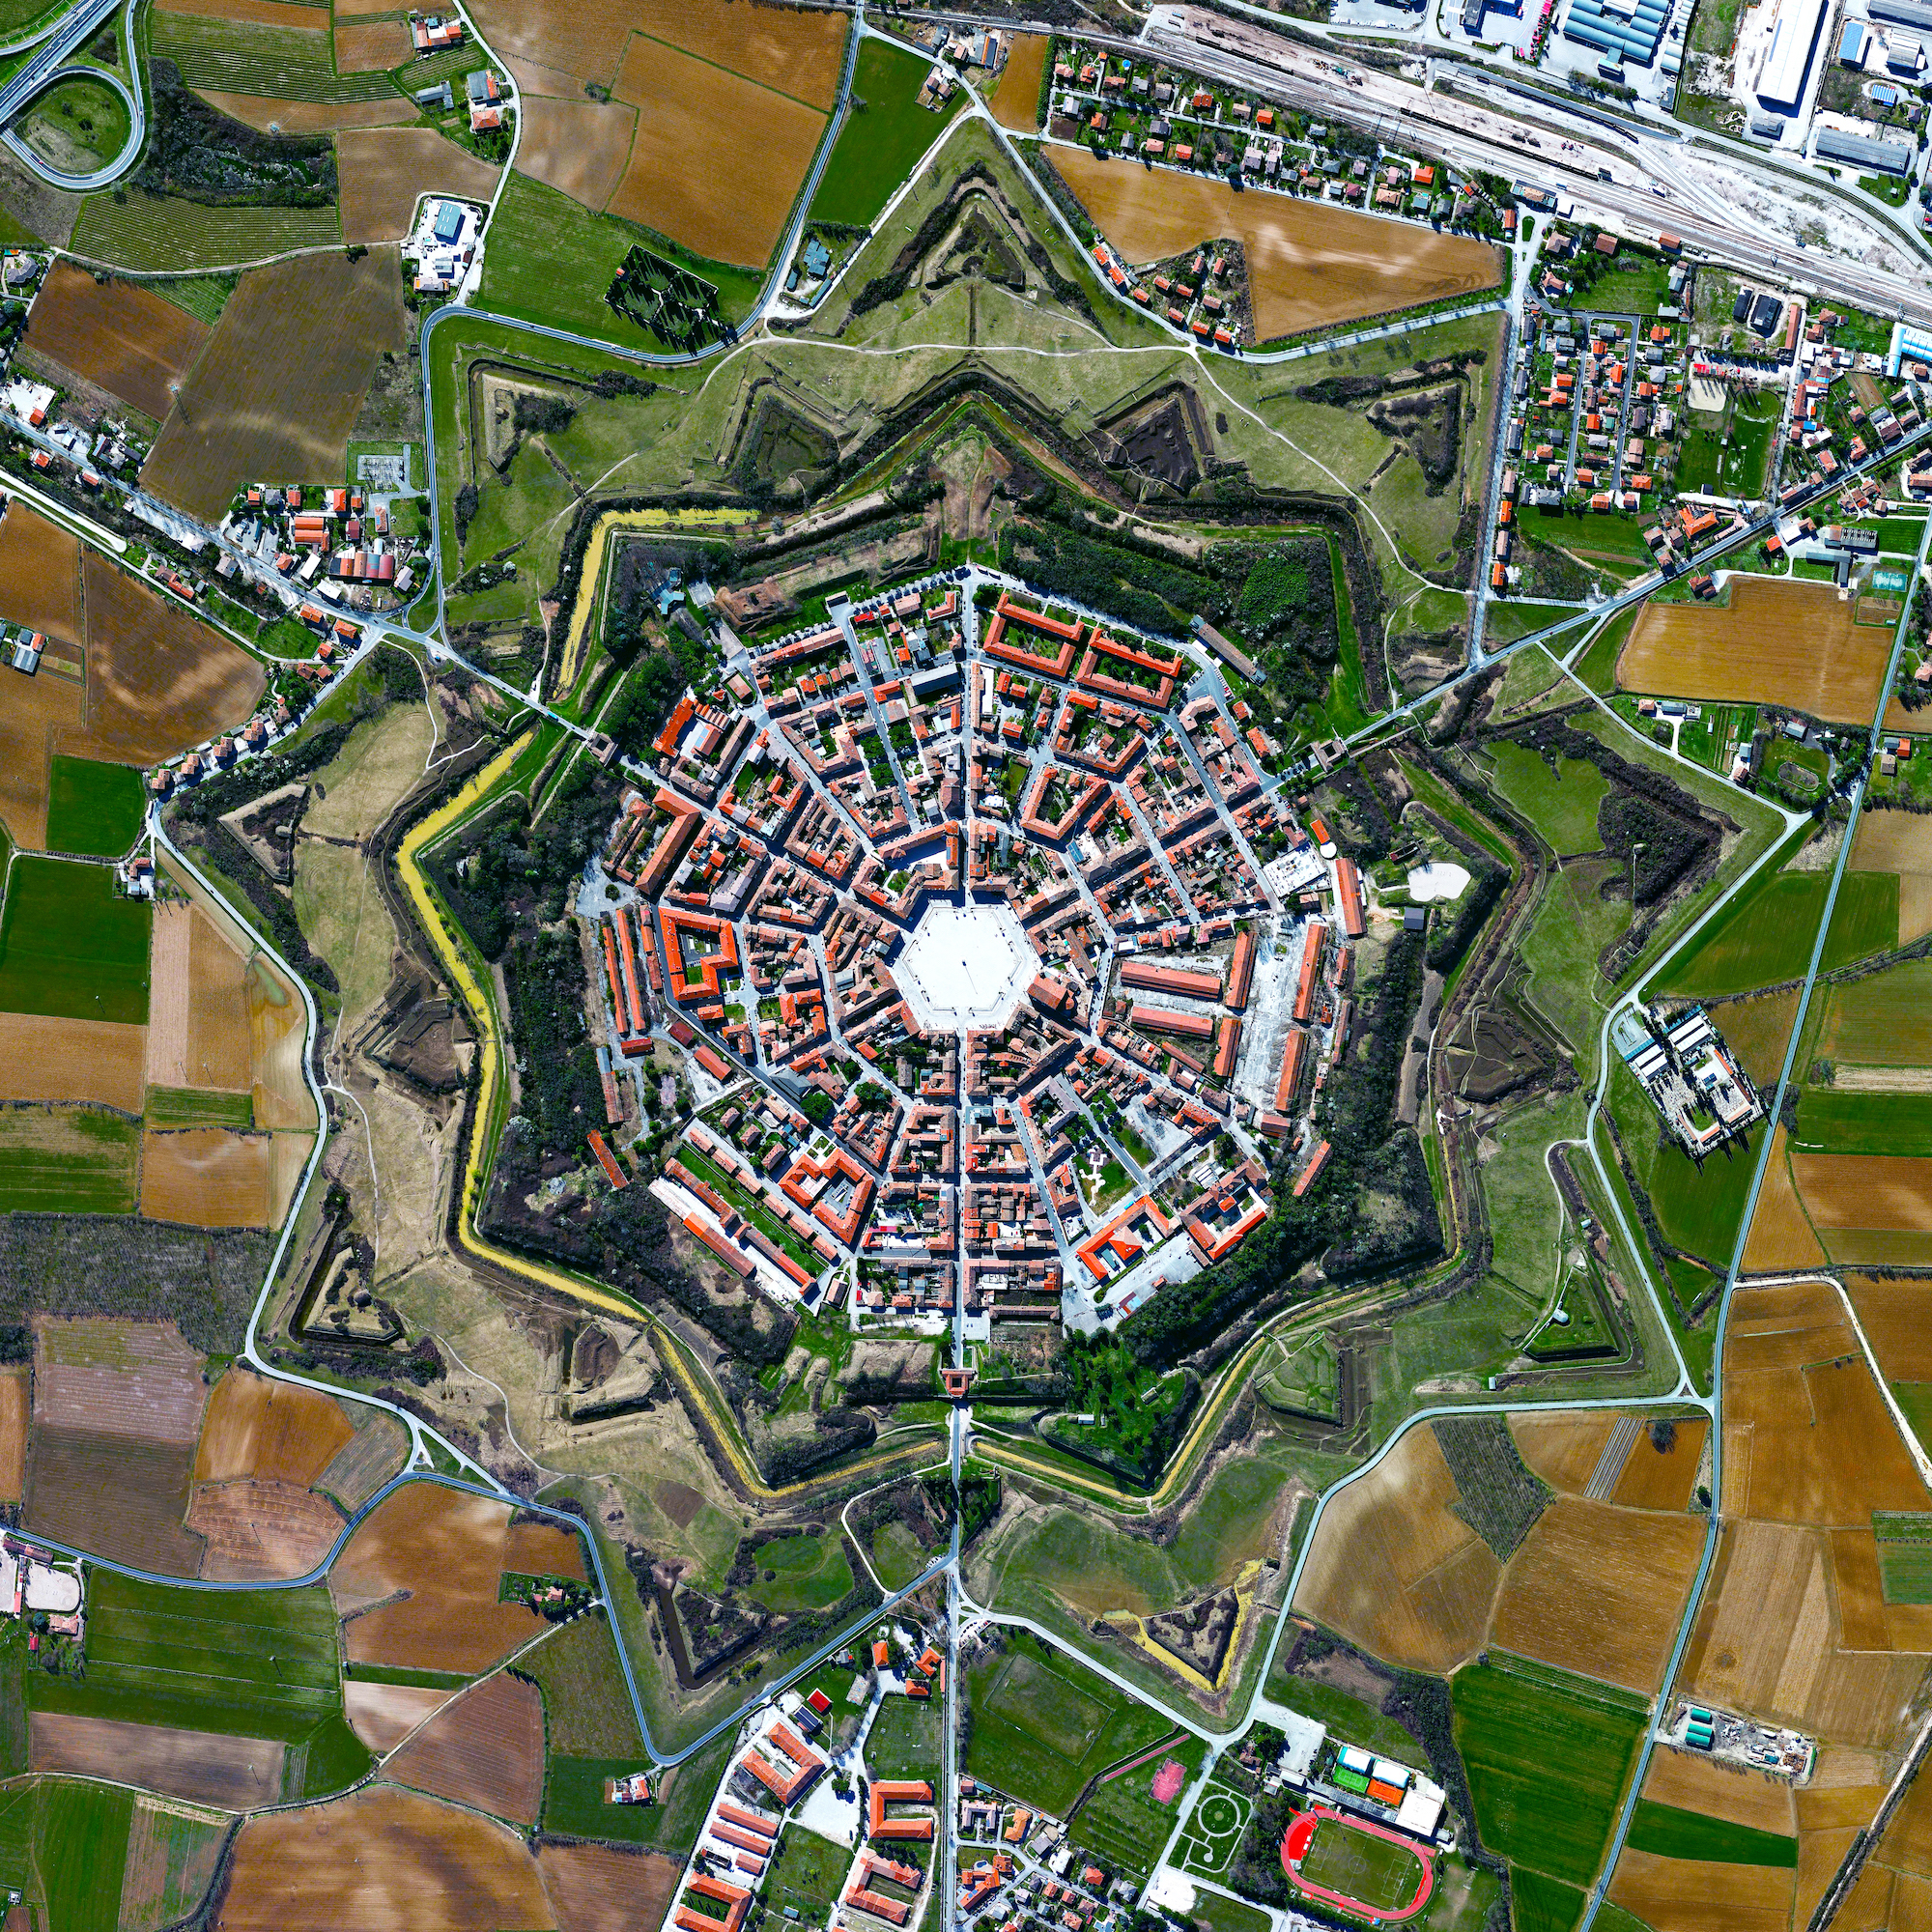 """The town of Palmanova, Italy, is recognized by its concentric layout known as a """"star fort."""" The rationale for this construction was that an attack on any individual wall could be defended from the two adjacent star points by shooting the enemy from behind. The three rings that surround Palmanova were completed in 1593, 1690, and 1813.  45°54'17.8""""N, 13°18'35.8""""E  Source imagery: DigitalGlobe"""